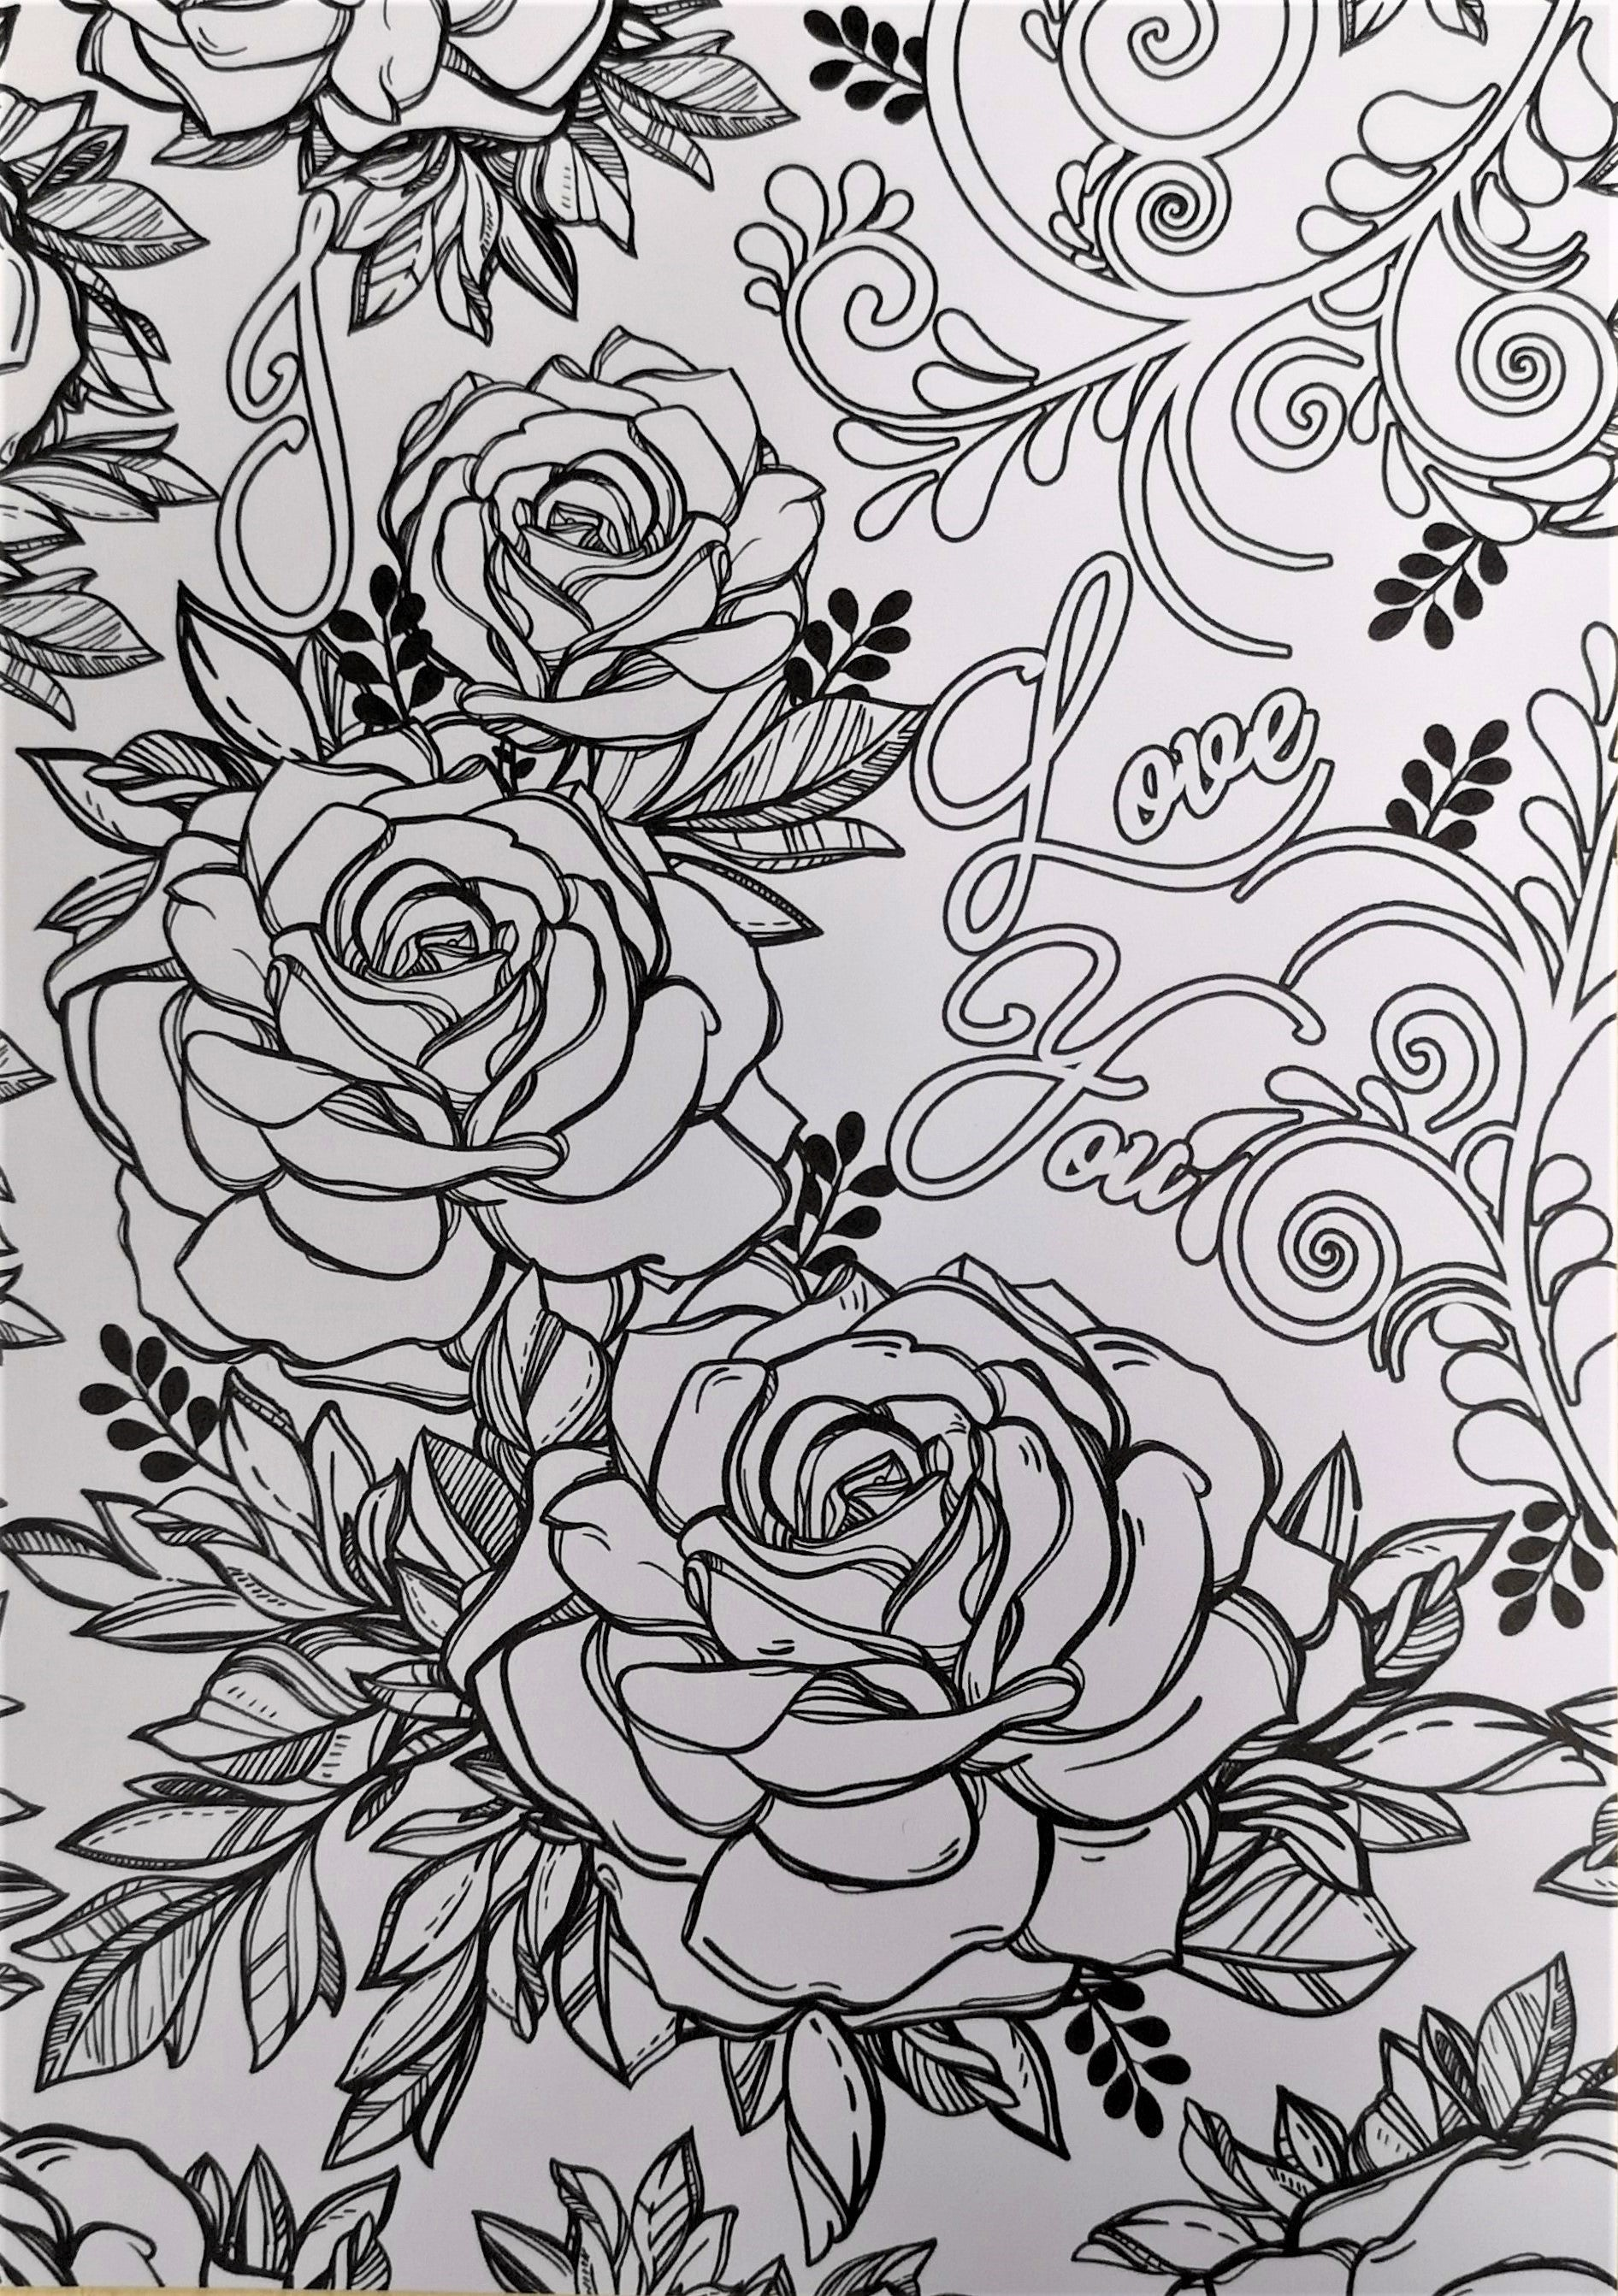 DaliART - A5 Colouring Pages - 3 designs - 9 in total, Arts & Entertainment by The Craft House